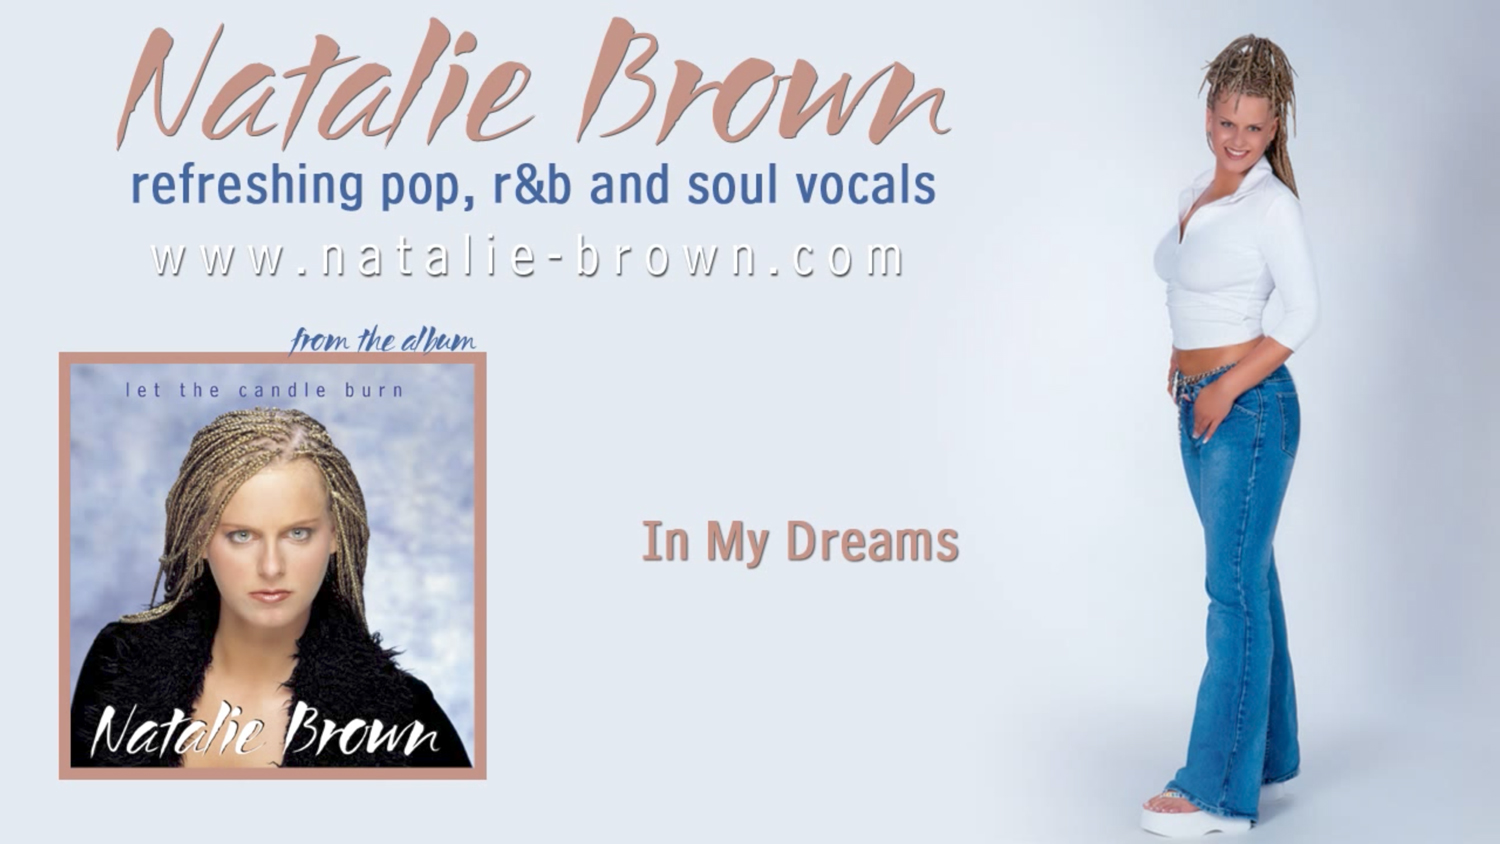 Natalie Brown | In My Dreams | Let the Candle Burn